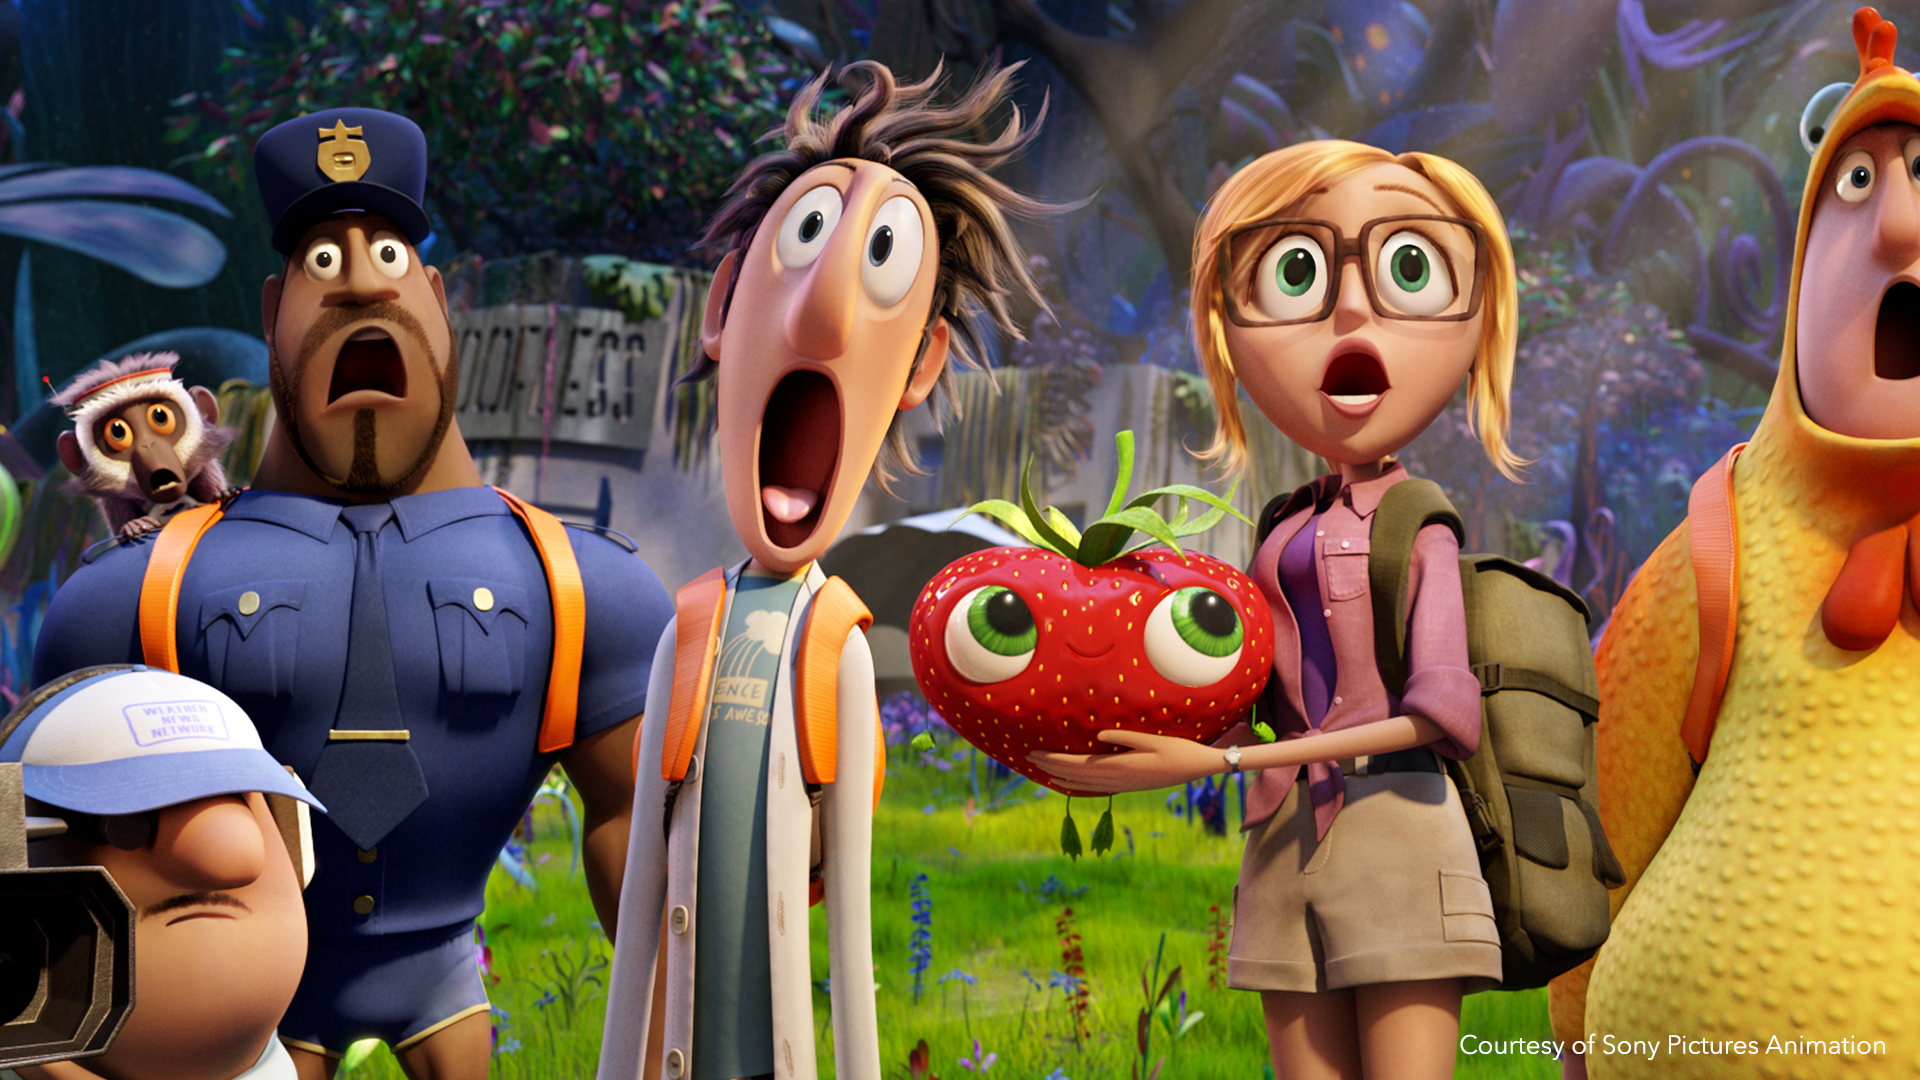 Family CGI movie Cloudy with a chance of meatballs is a success thanks to Flix